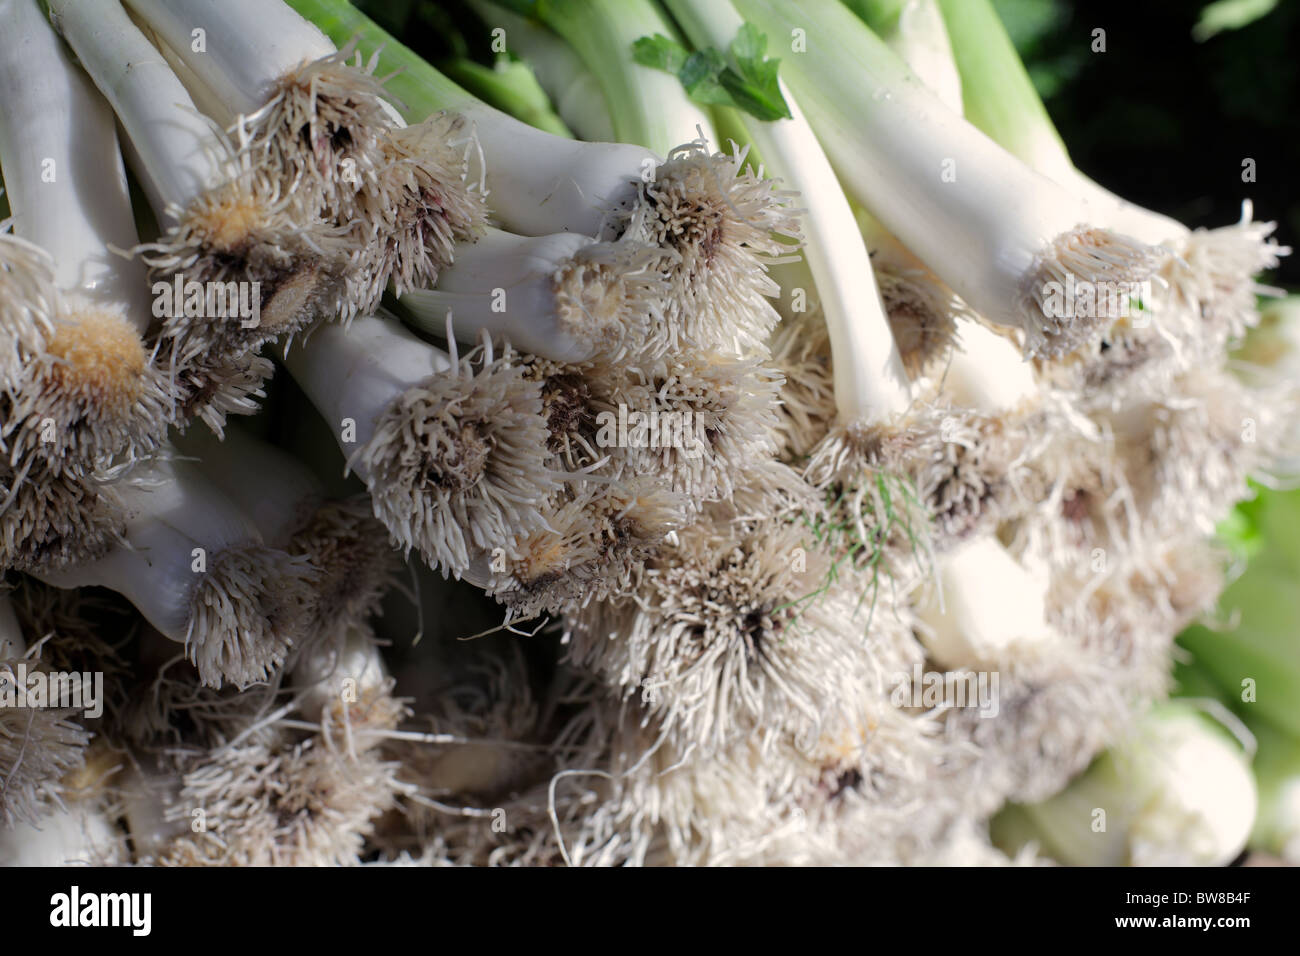 stack of leek - Stock Image